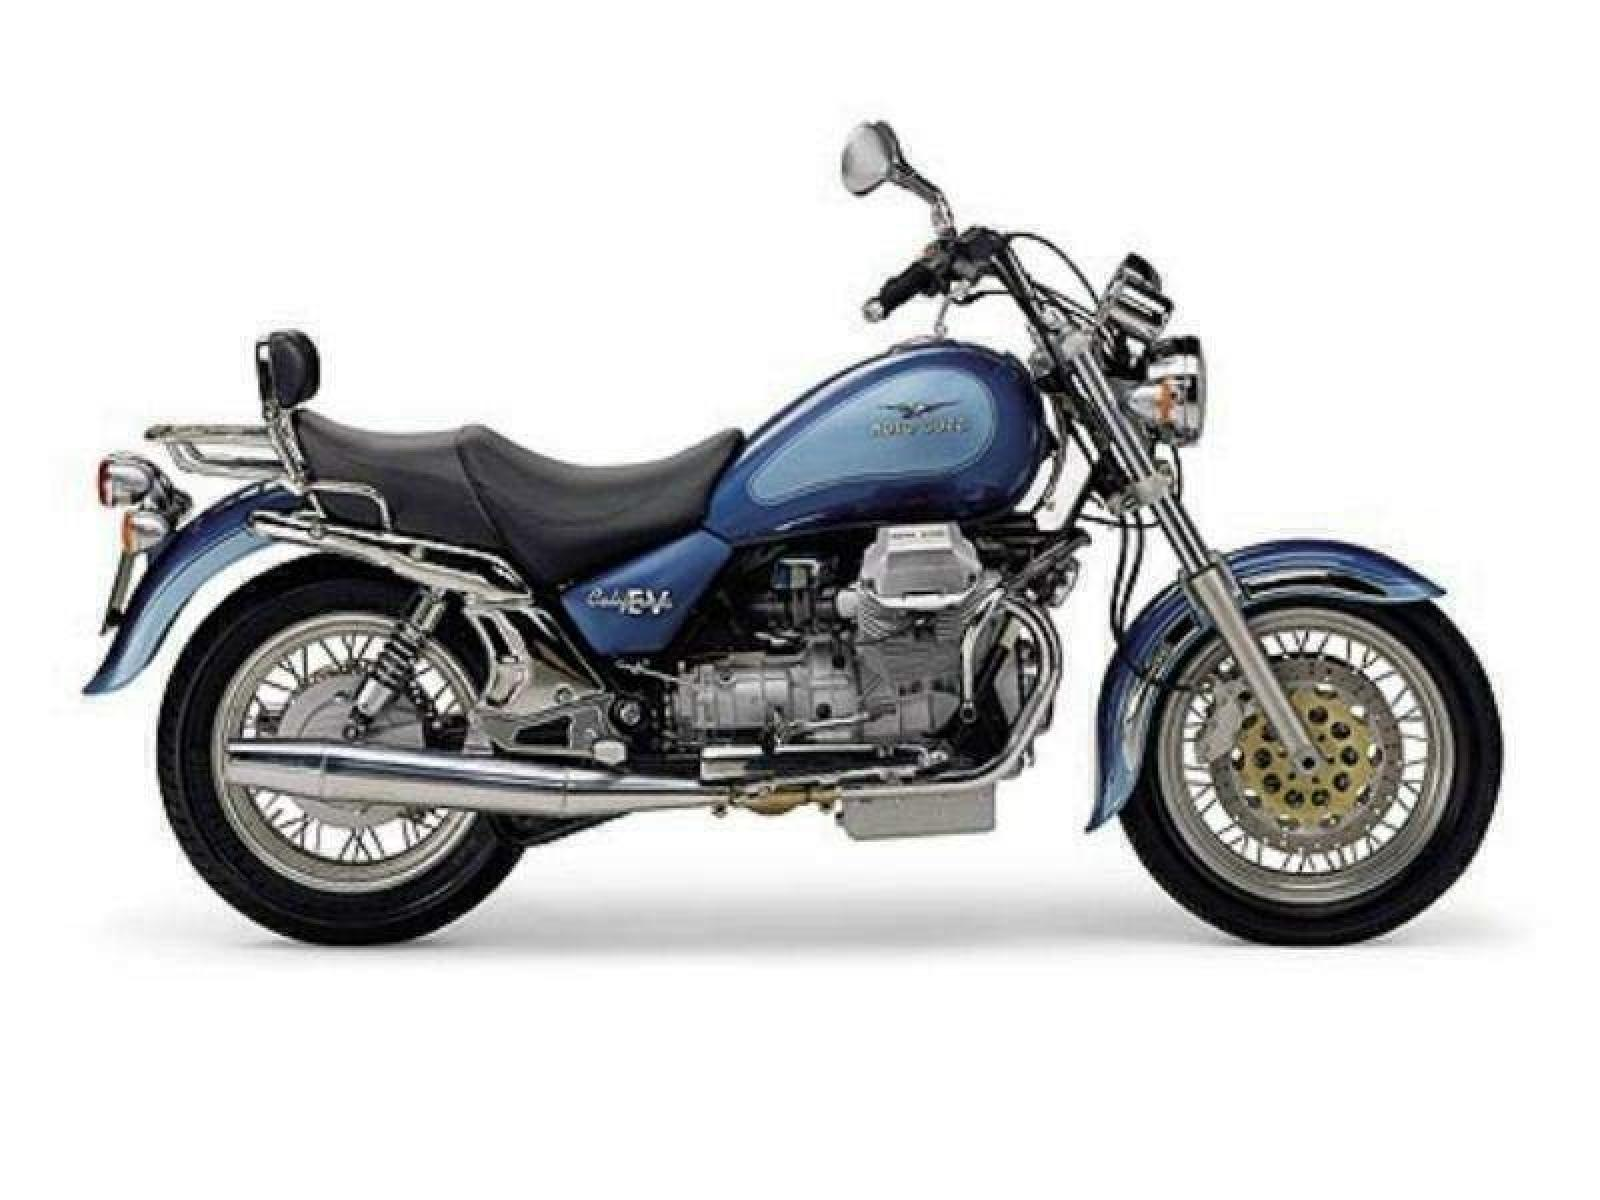 Moto Guzzi California 75 1998 images #108901